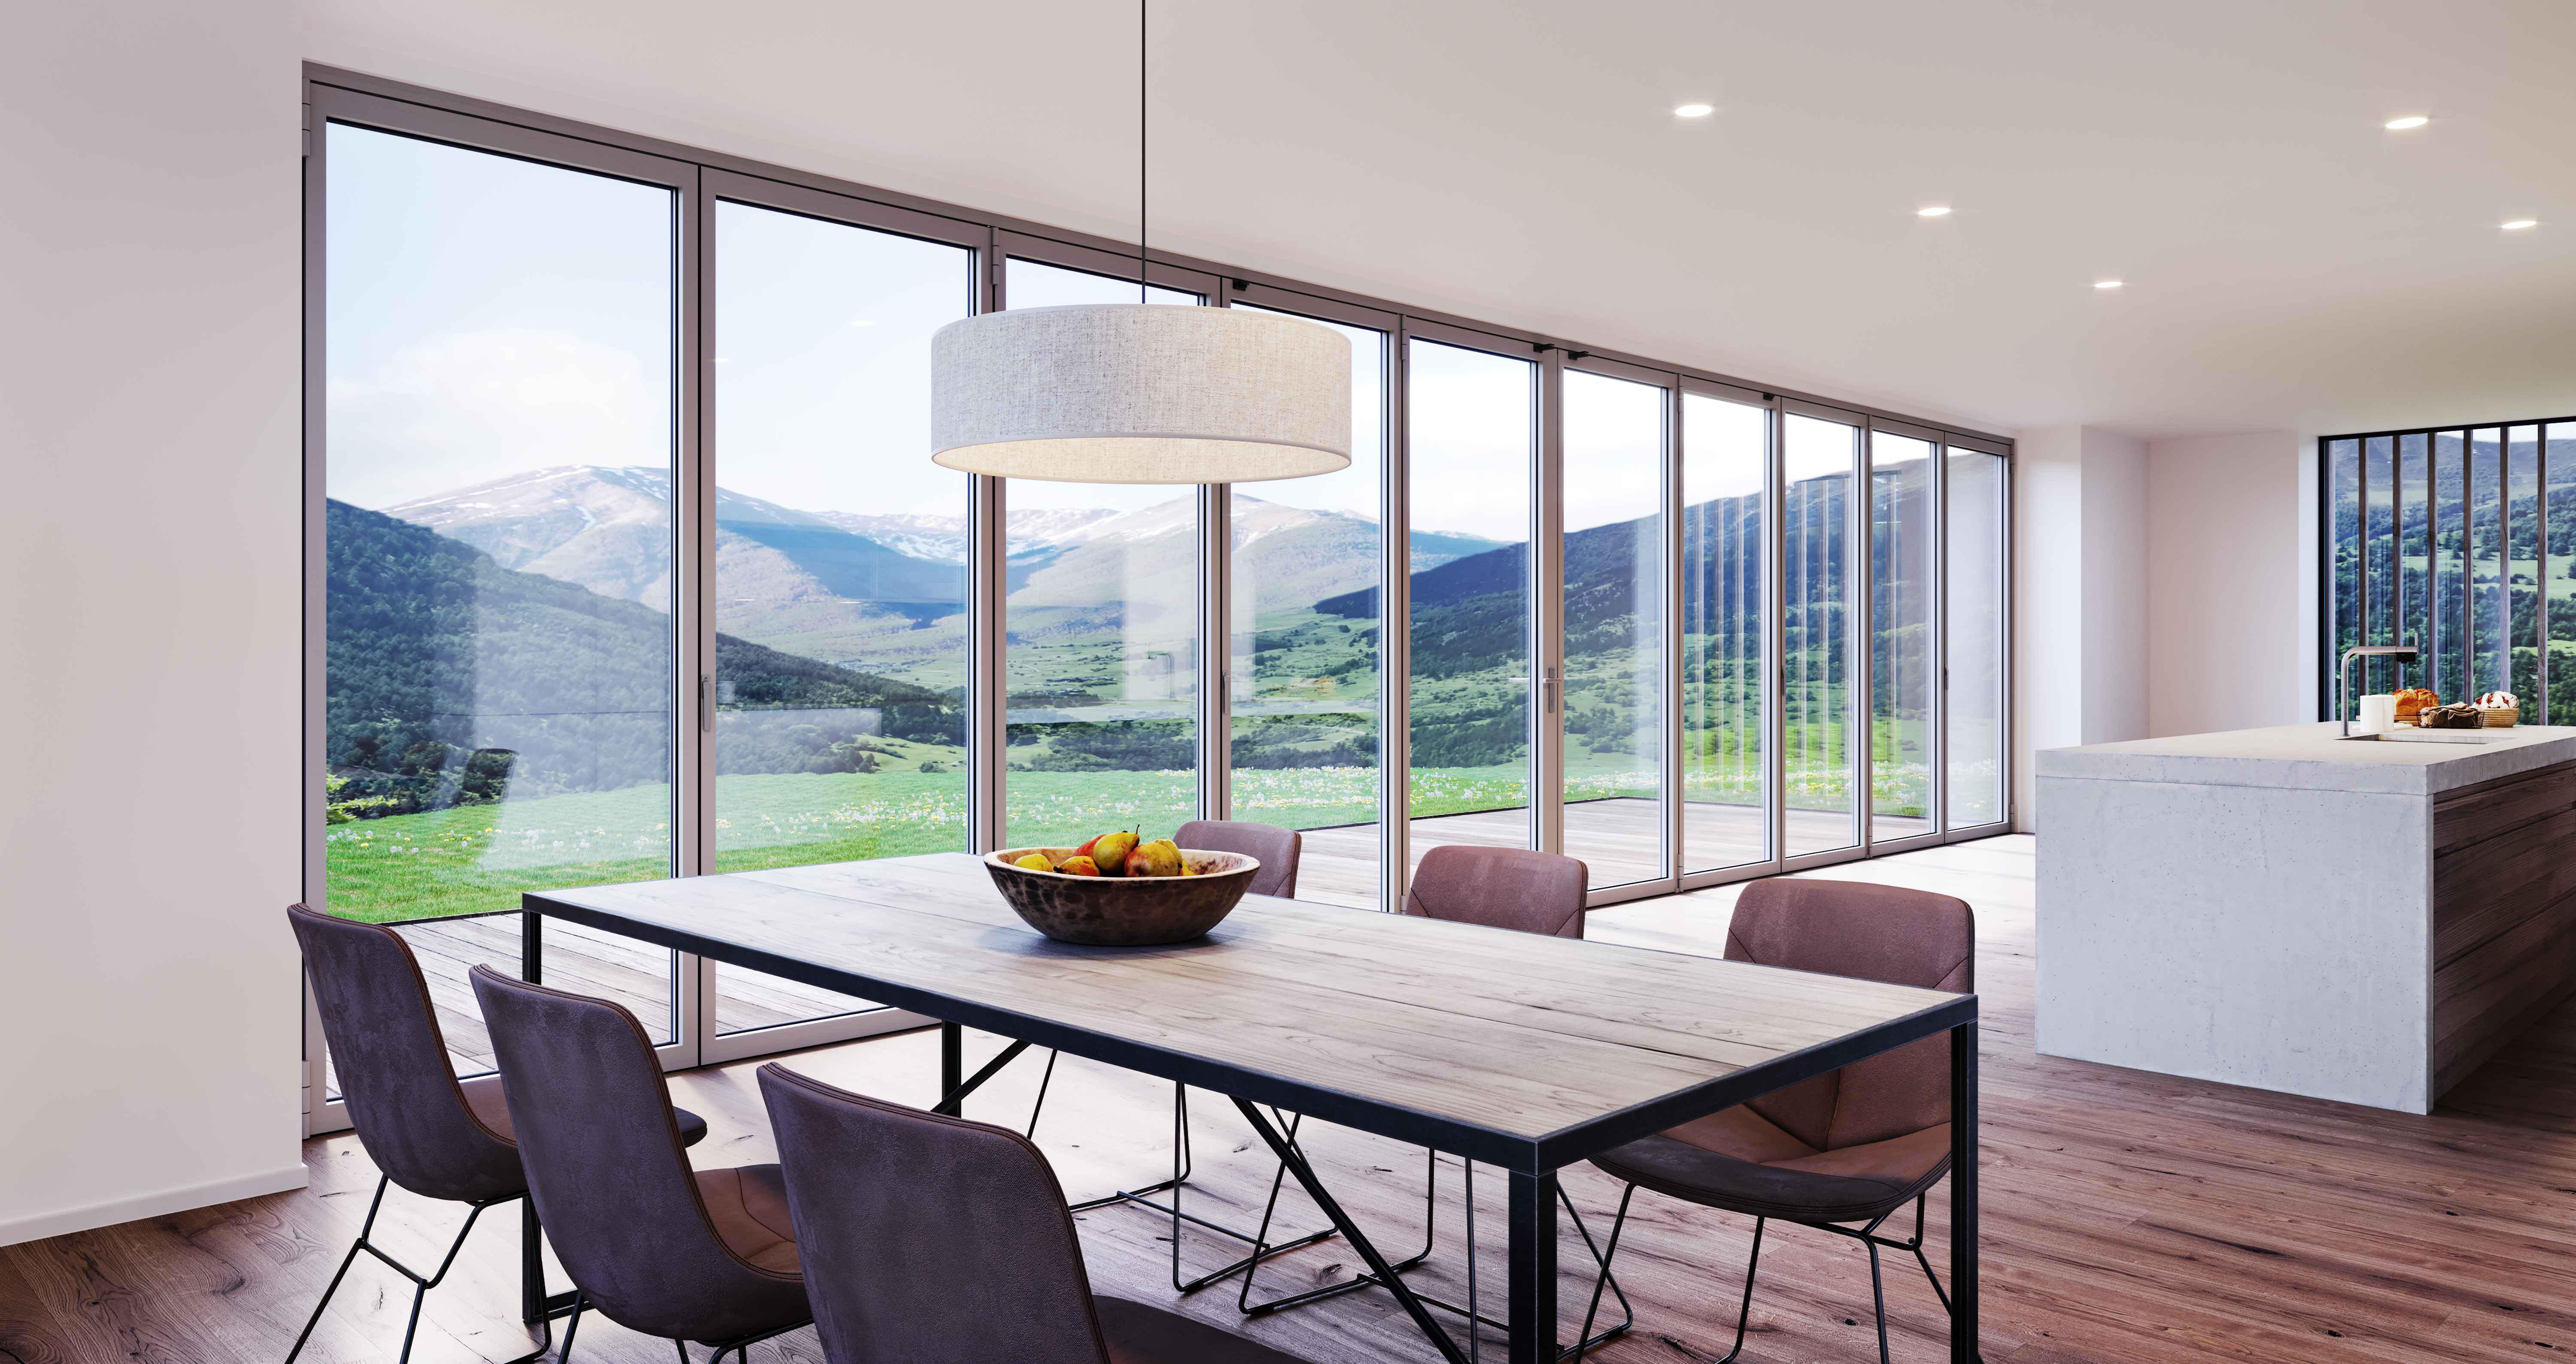 large folding glass wall bringing the indoor/outdoor lifestyle